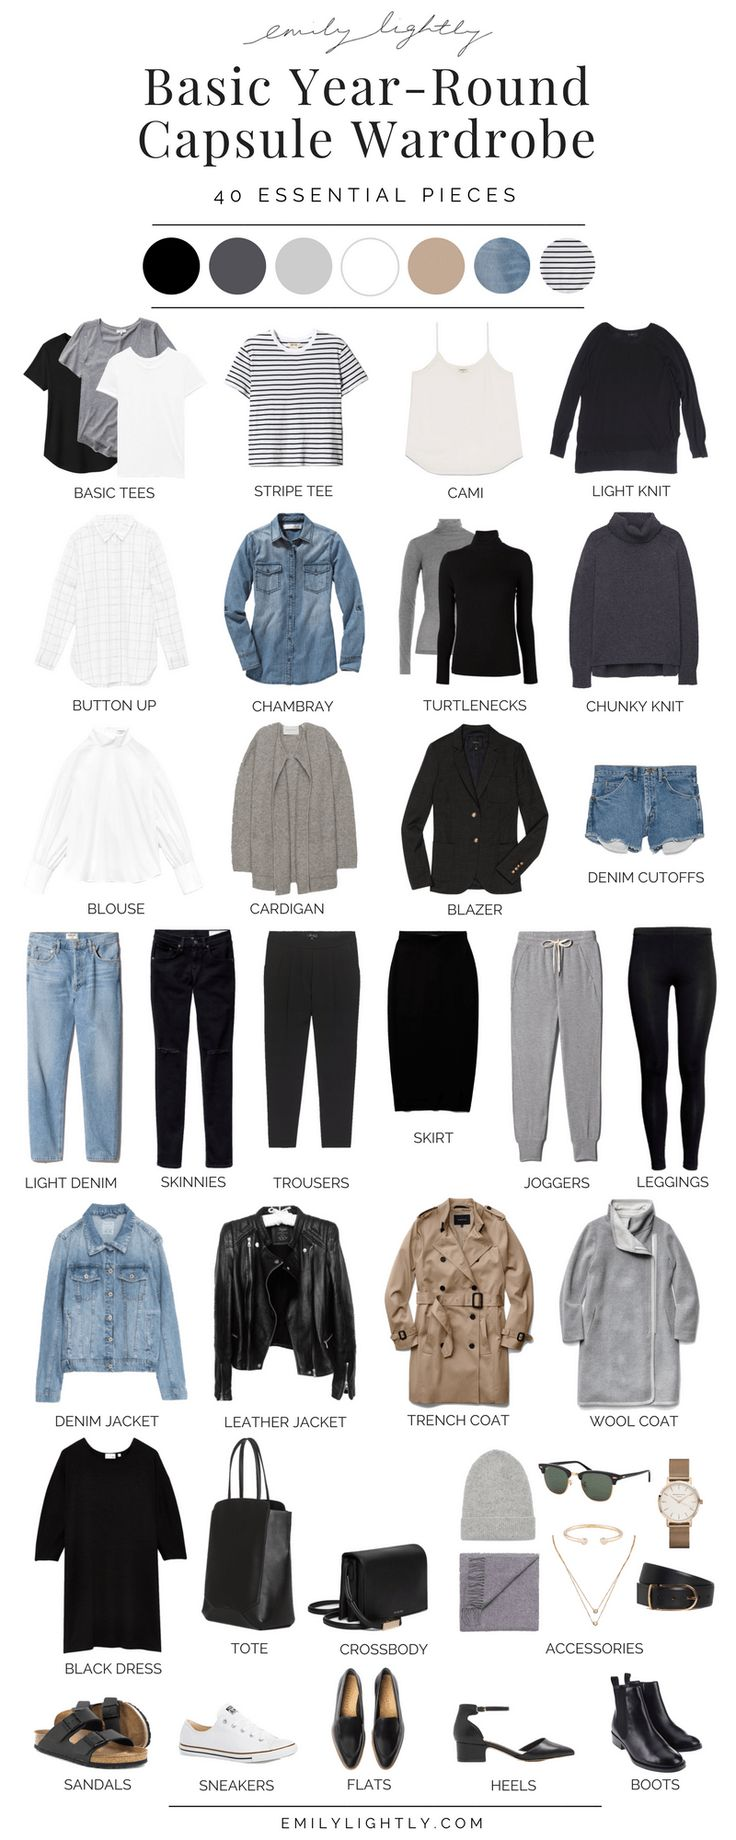 Capsule Wardrobe: 73 Best Capsule Wardrobe Images On Pinterest